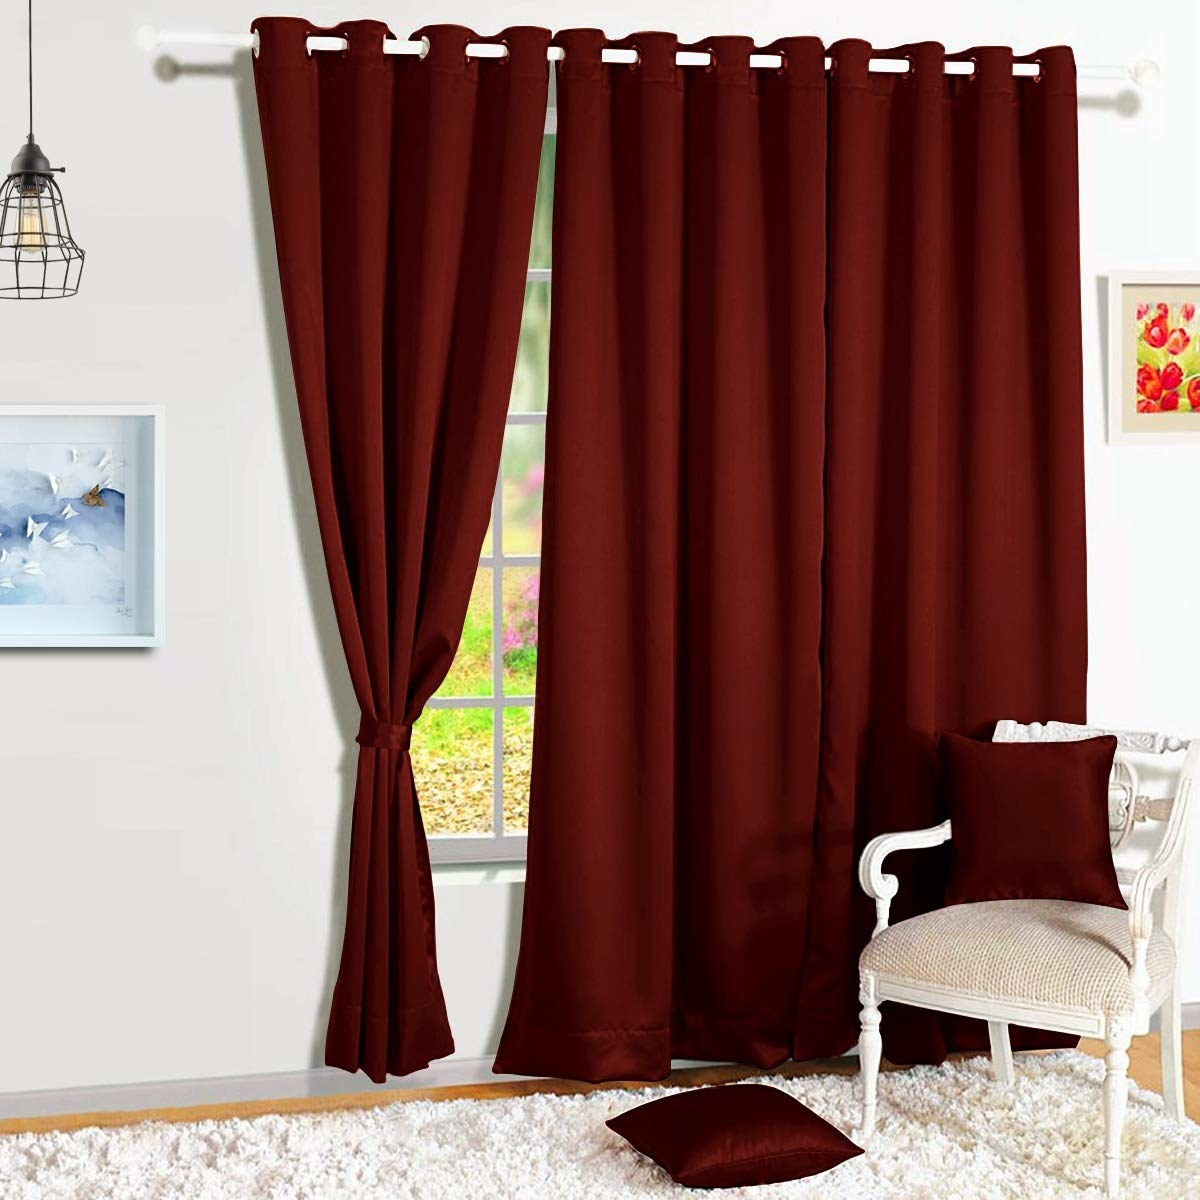 A pair of red blackout curtains